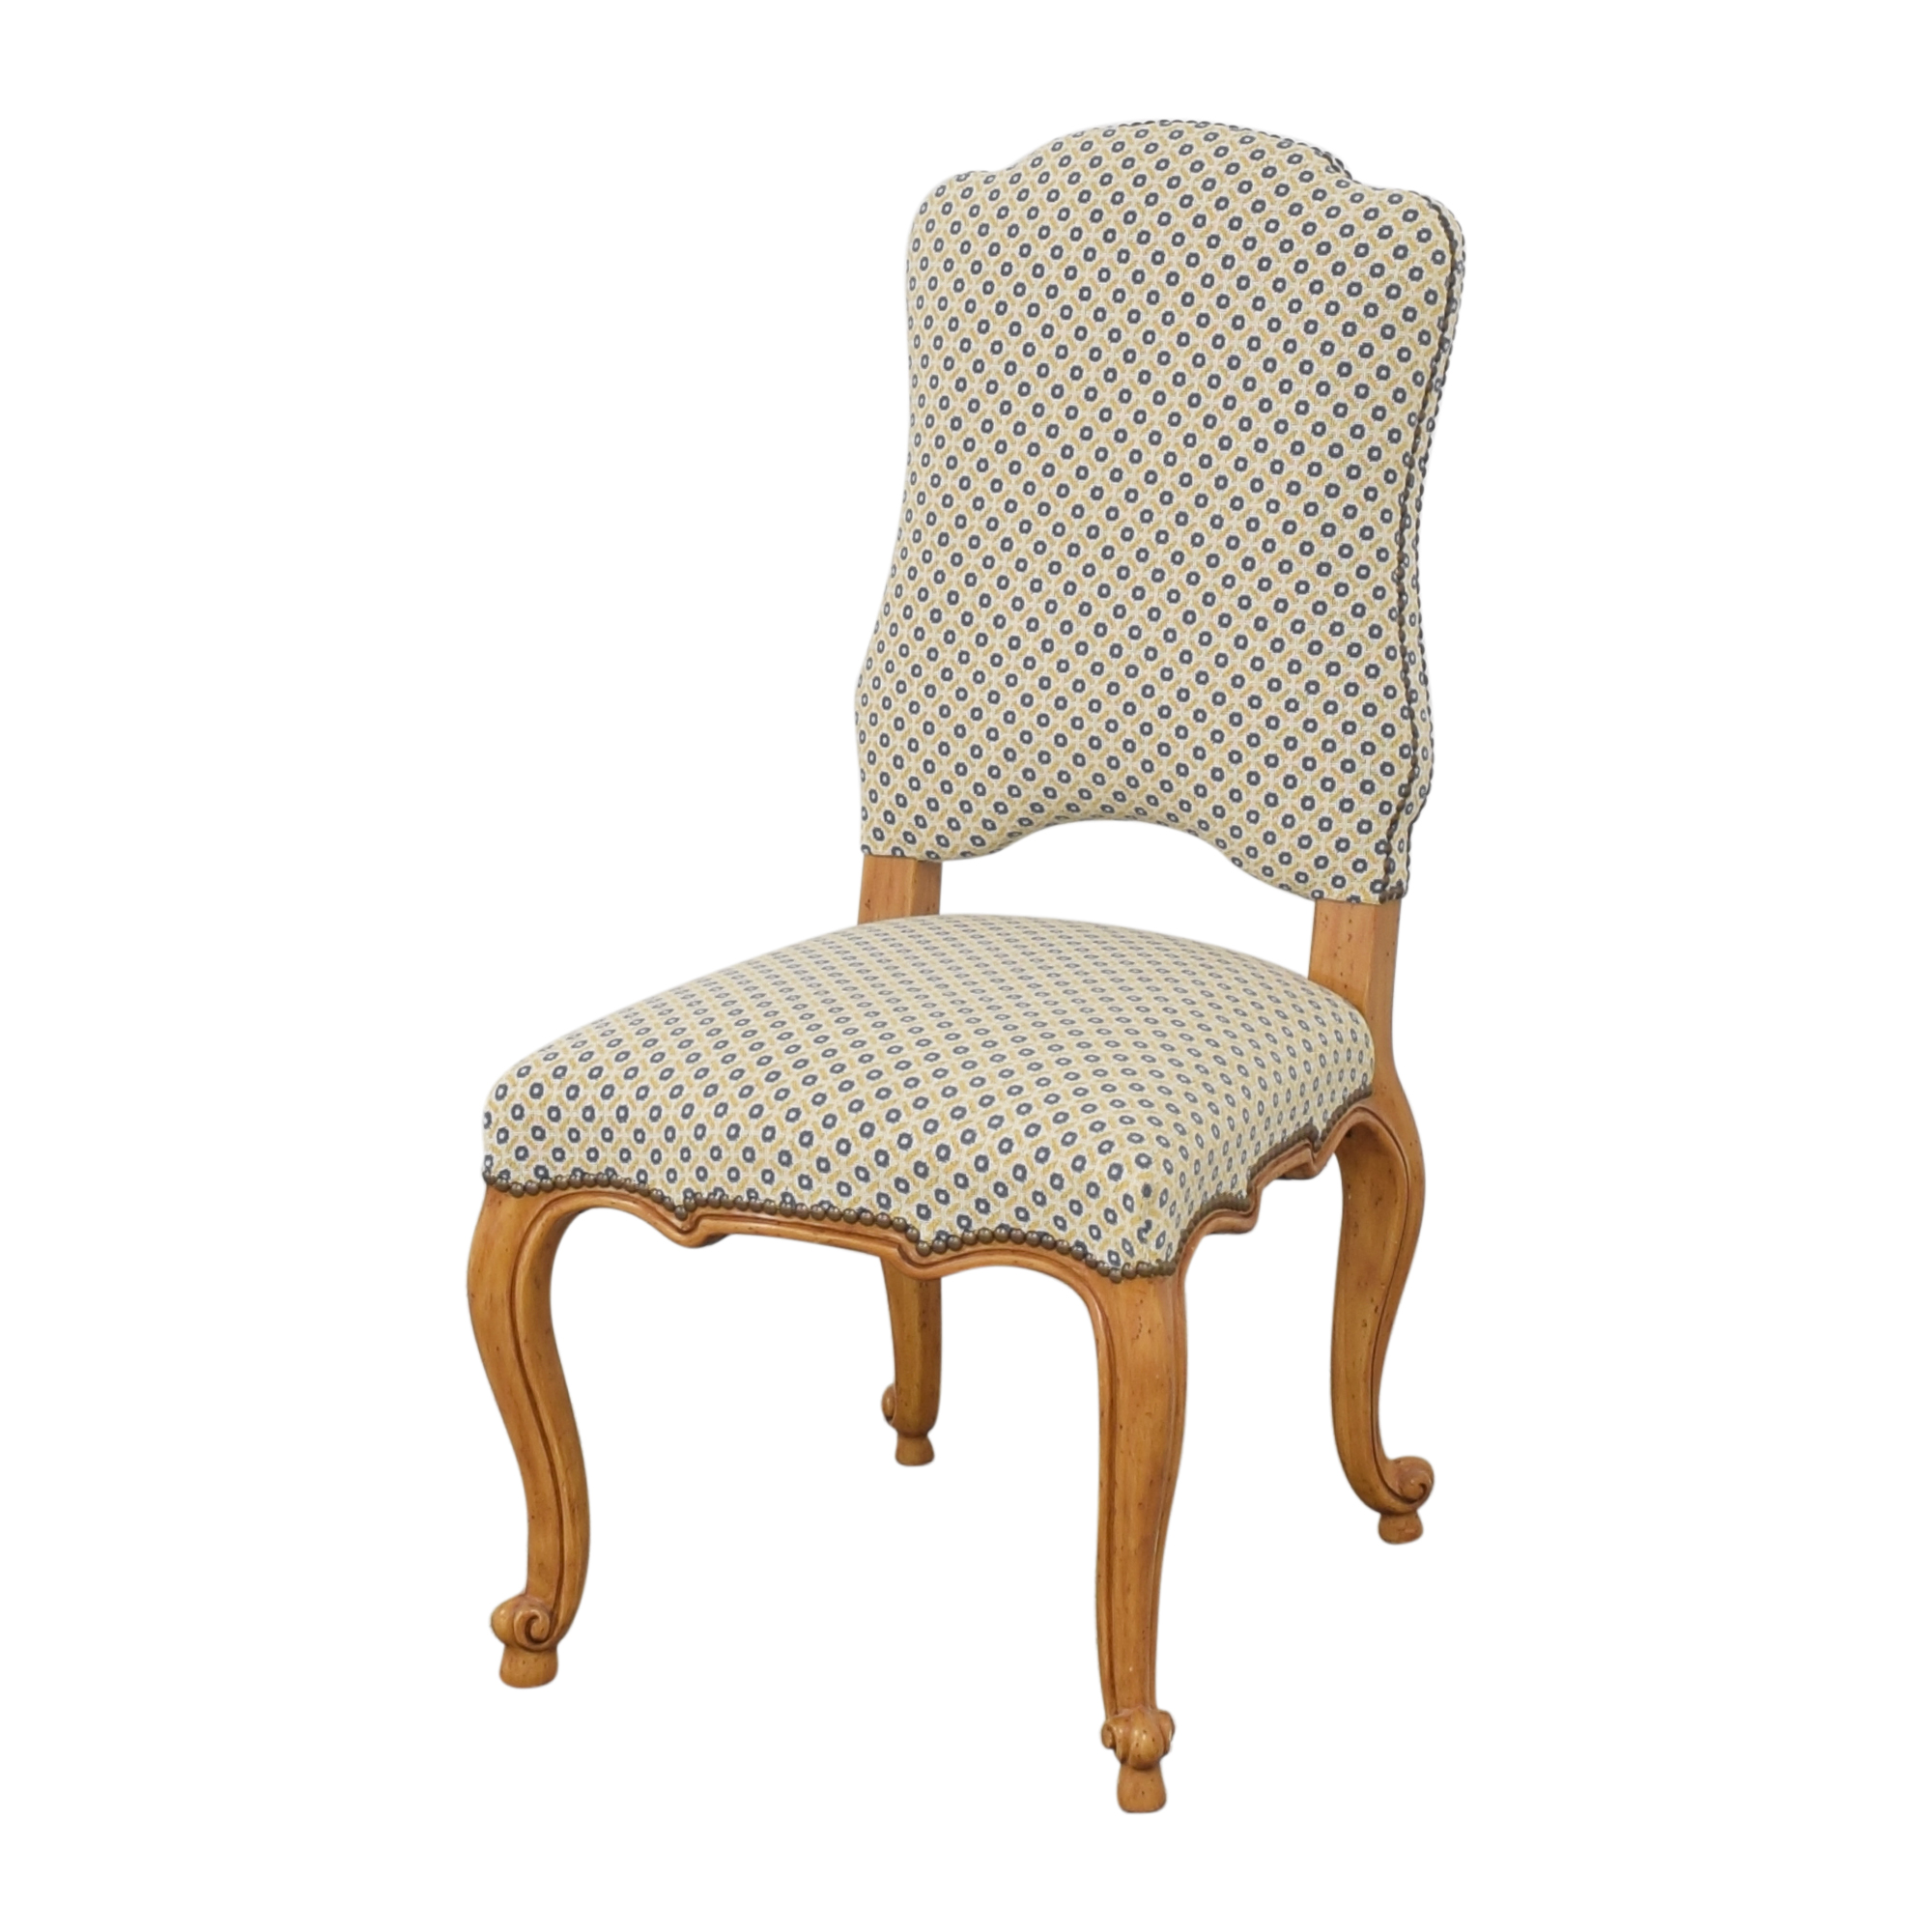 Minton-Spidell Minton-Spidell Regence Dining Side Chairs multi